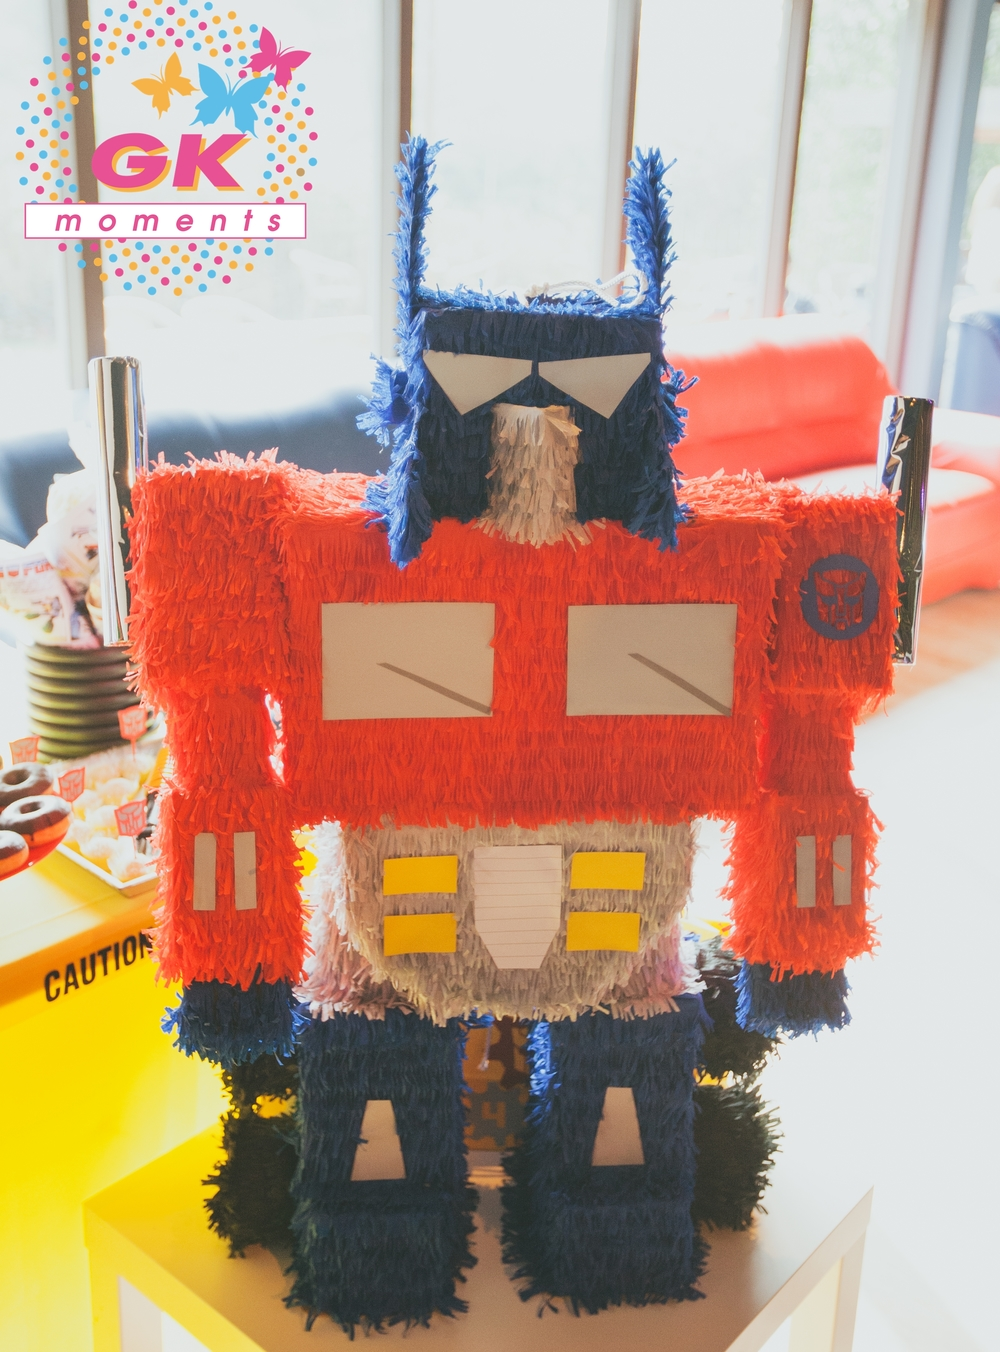 Optimus Prime Pinata by GK Moments